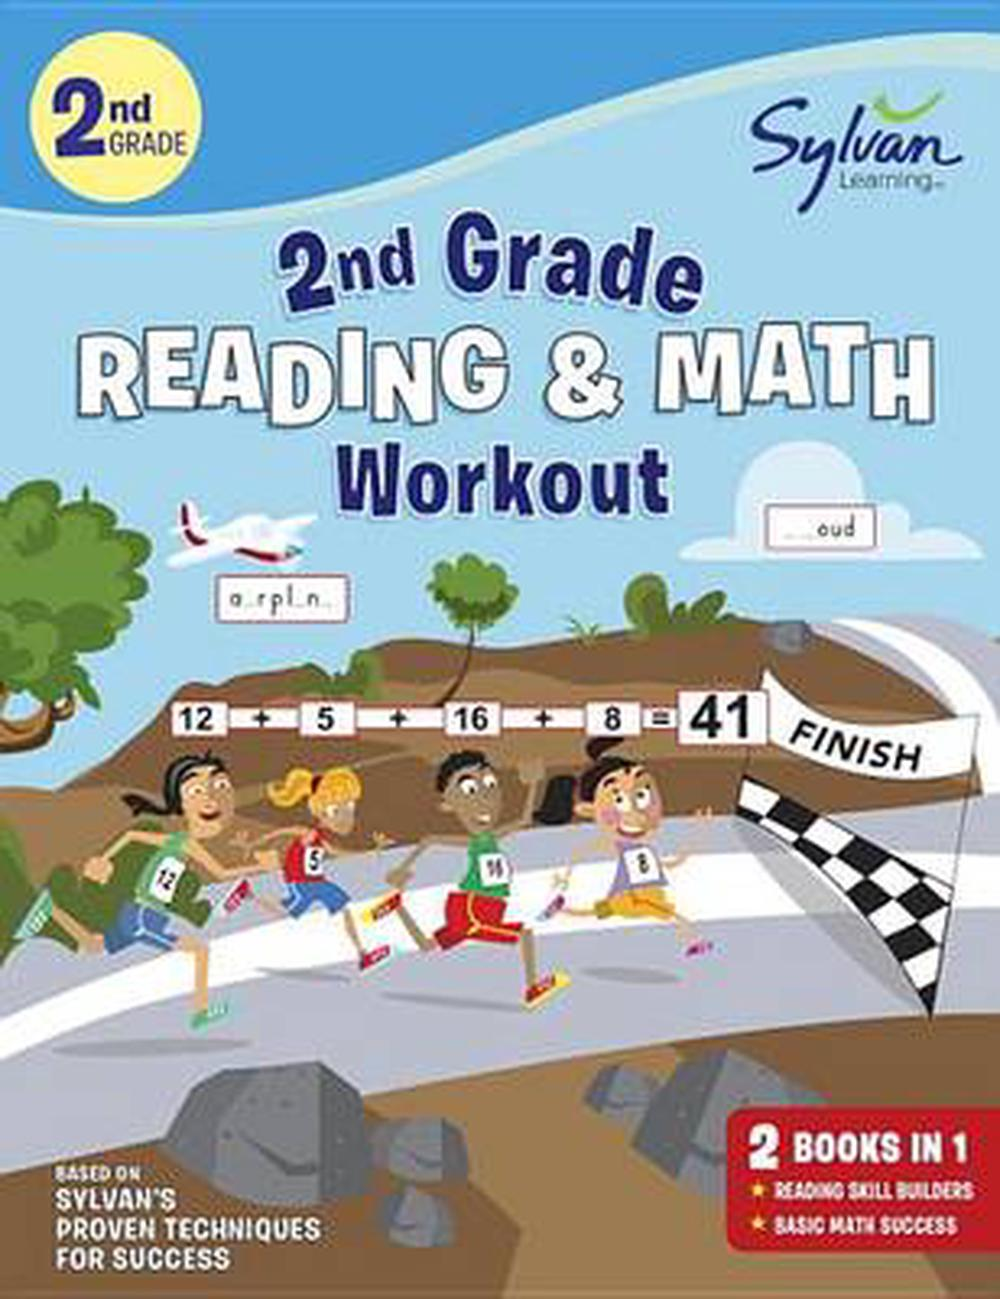 Second Grade Reading & Math Workout by Sylvan Learning, Paperback ...